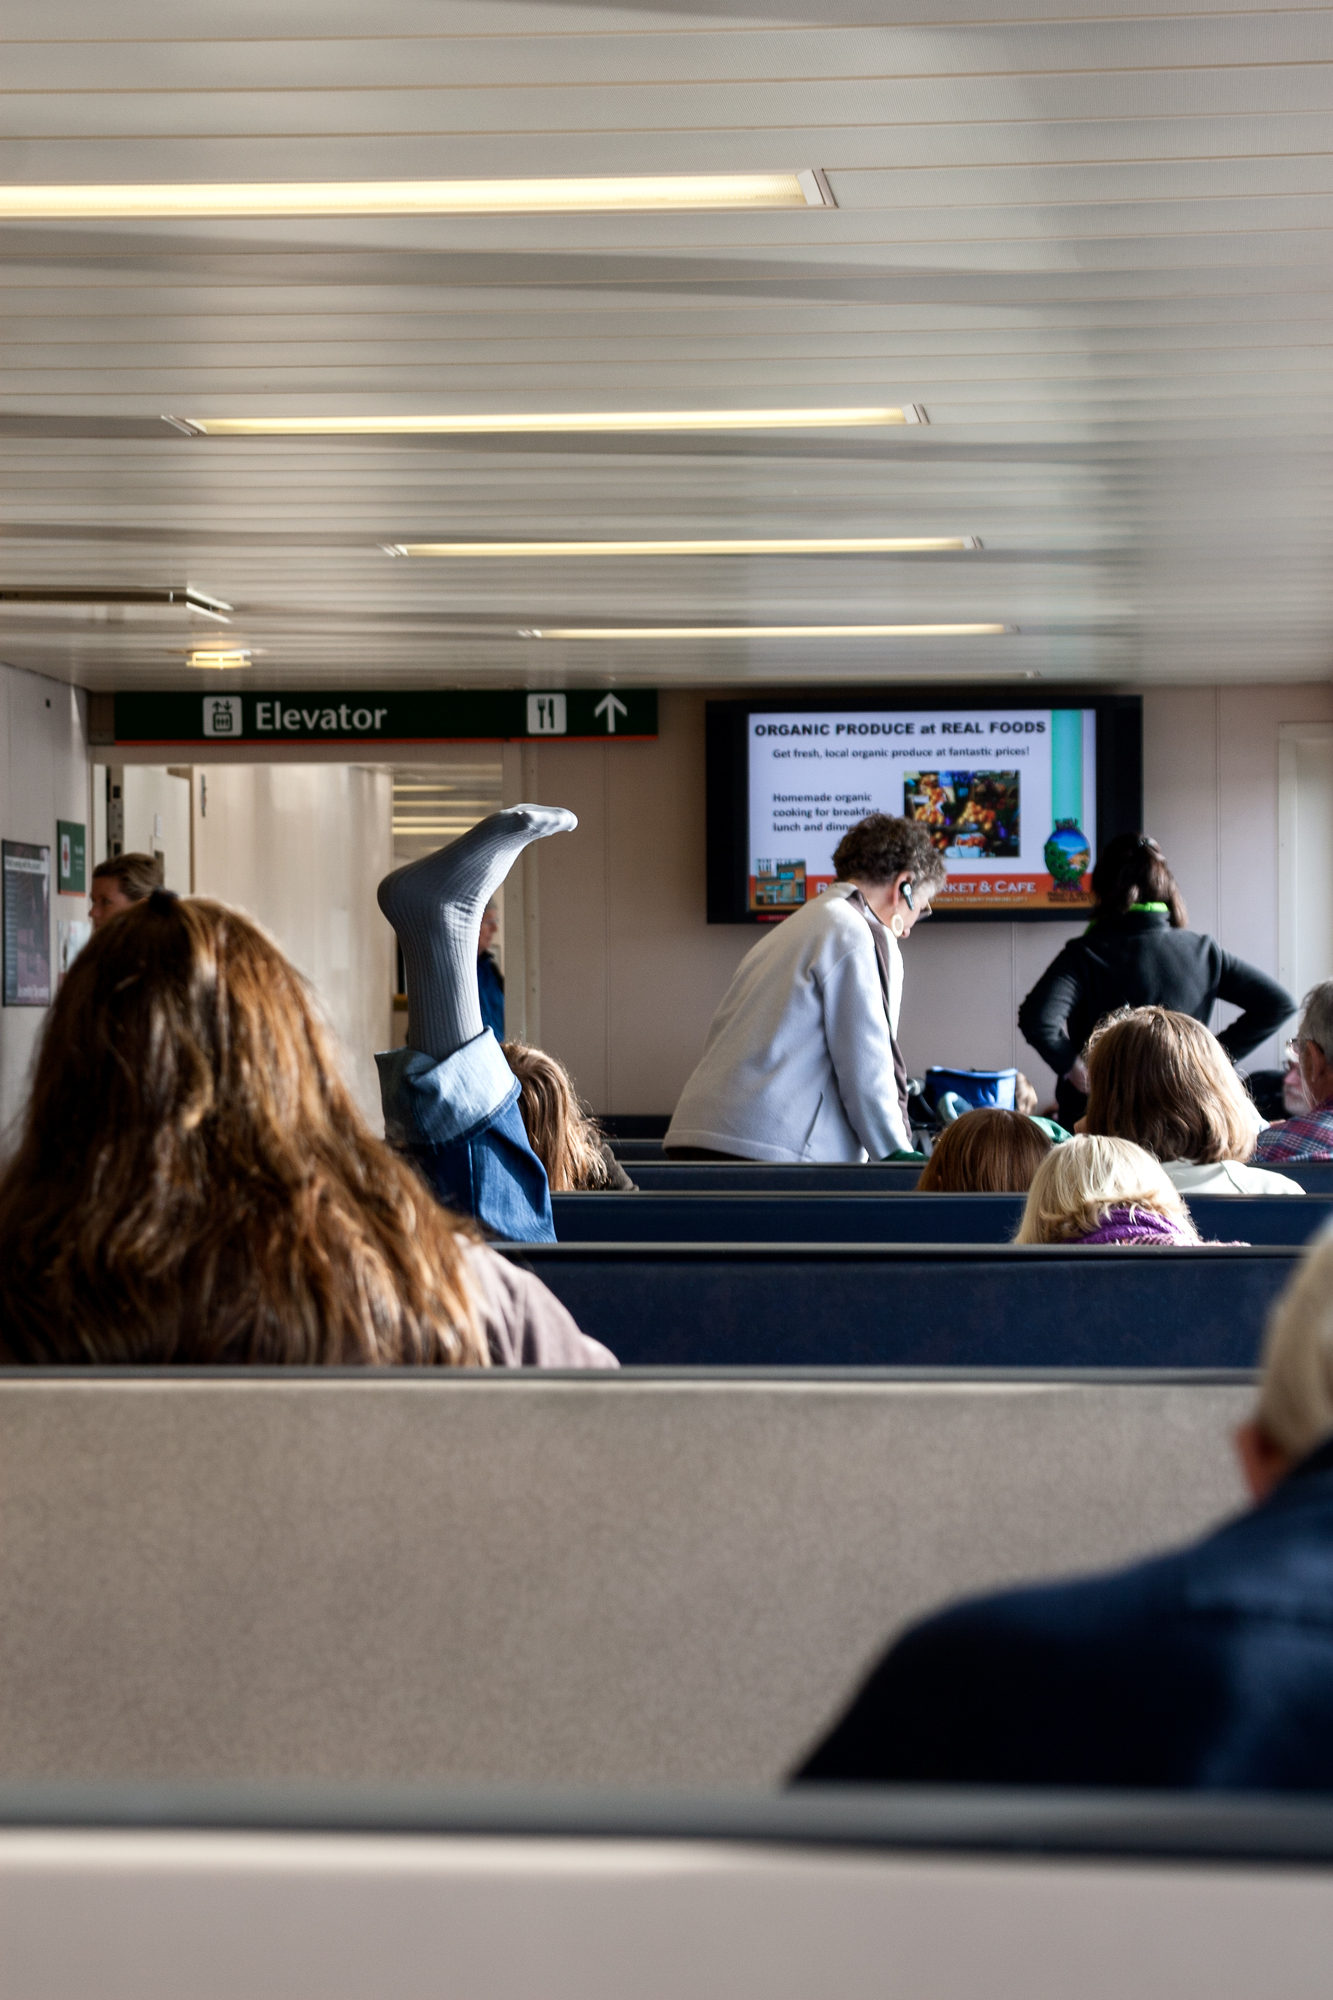 leg-stretch-on-a-ferry-ride-web-.jpg